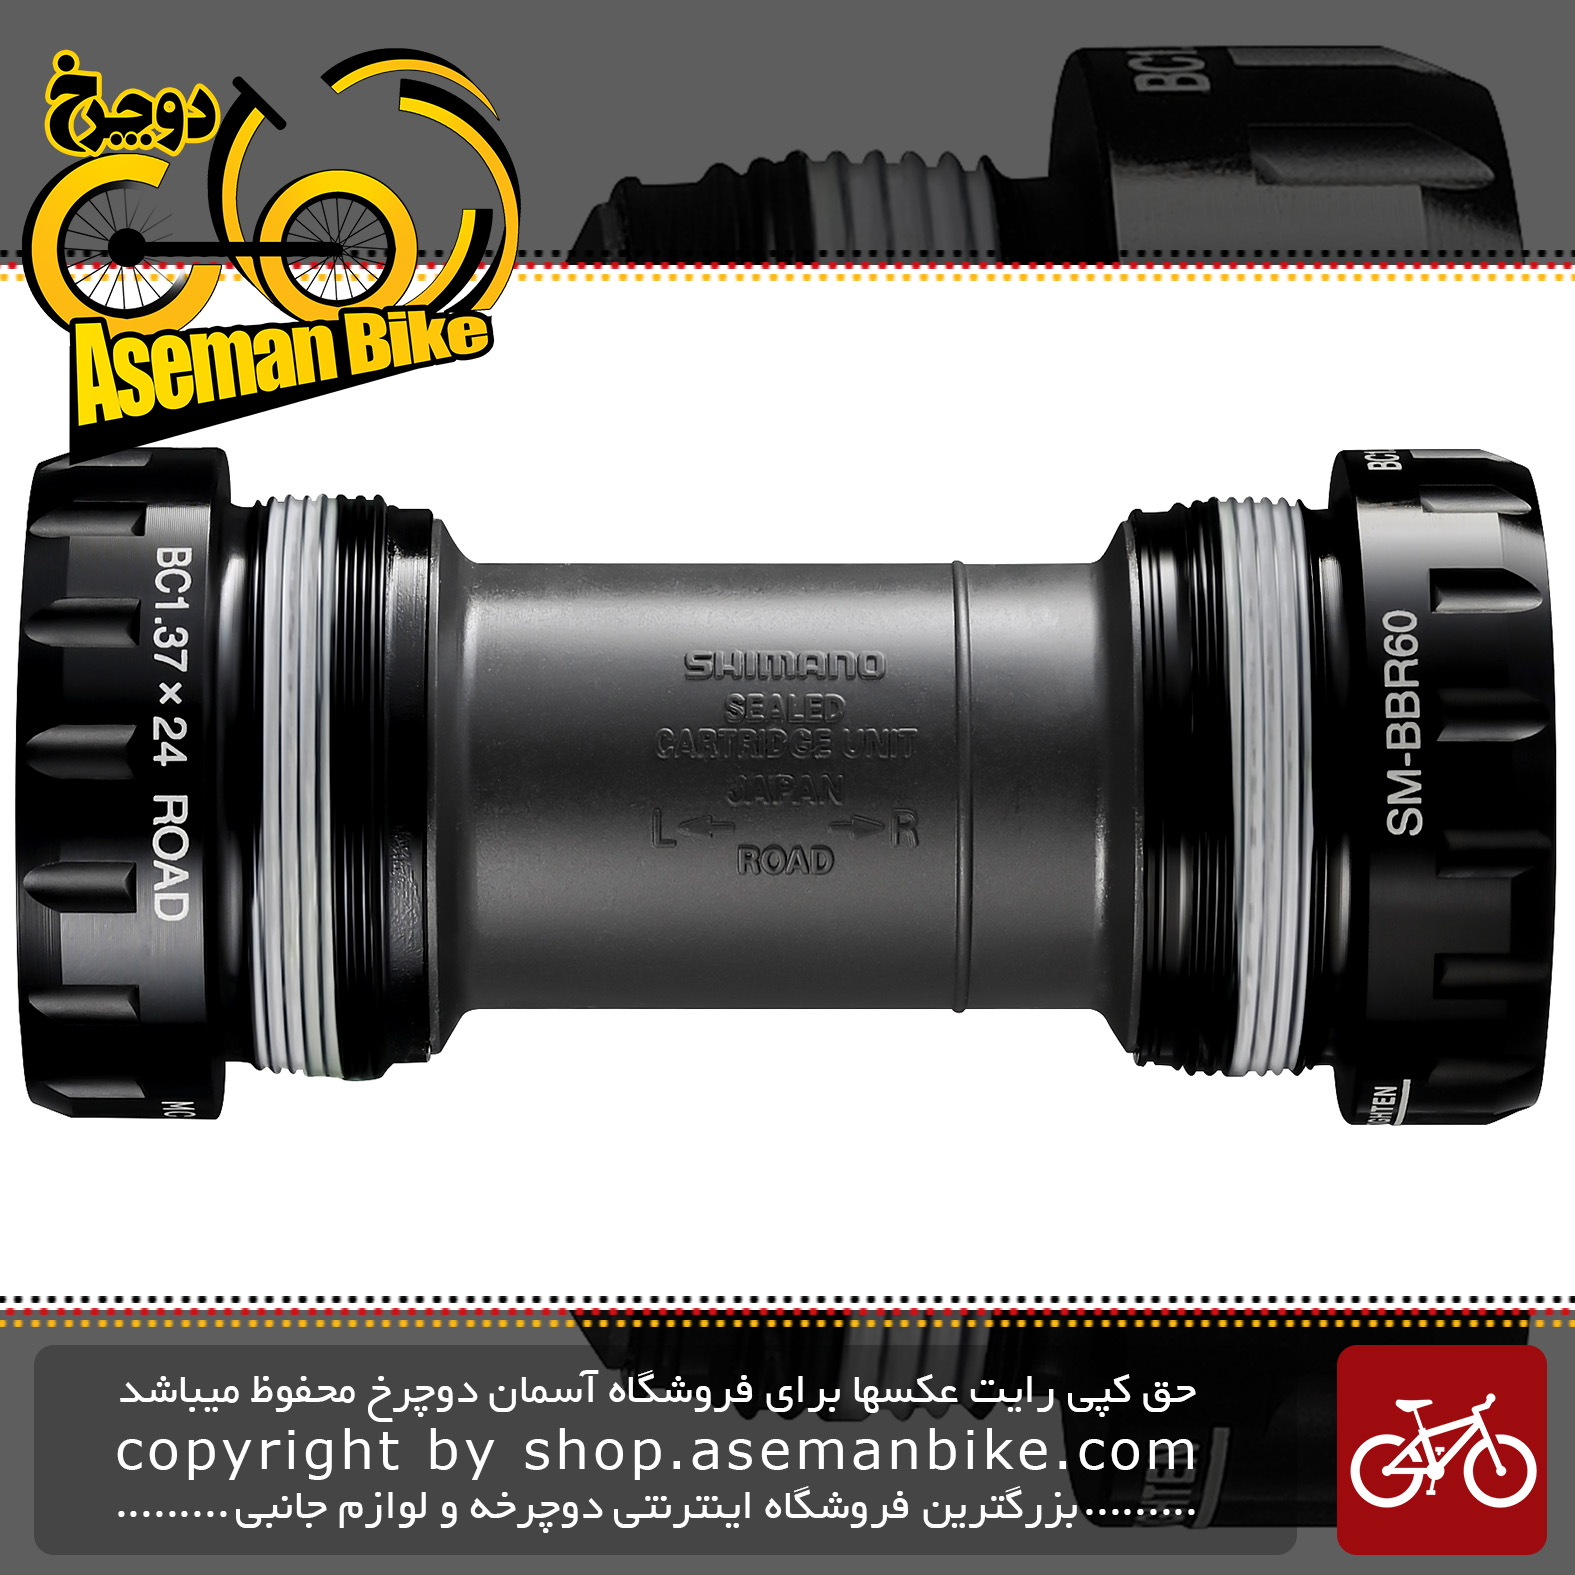 توپی تنه دوچرخه شیمانو التگرا Shimano Ultegra SM-BBR60 Bottom Bracket